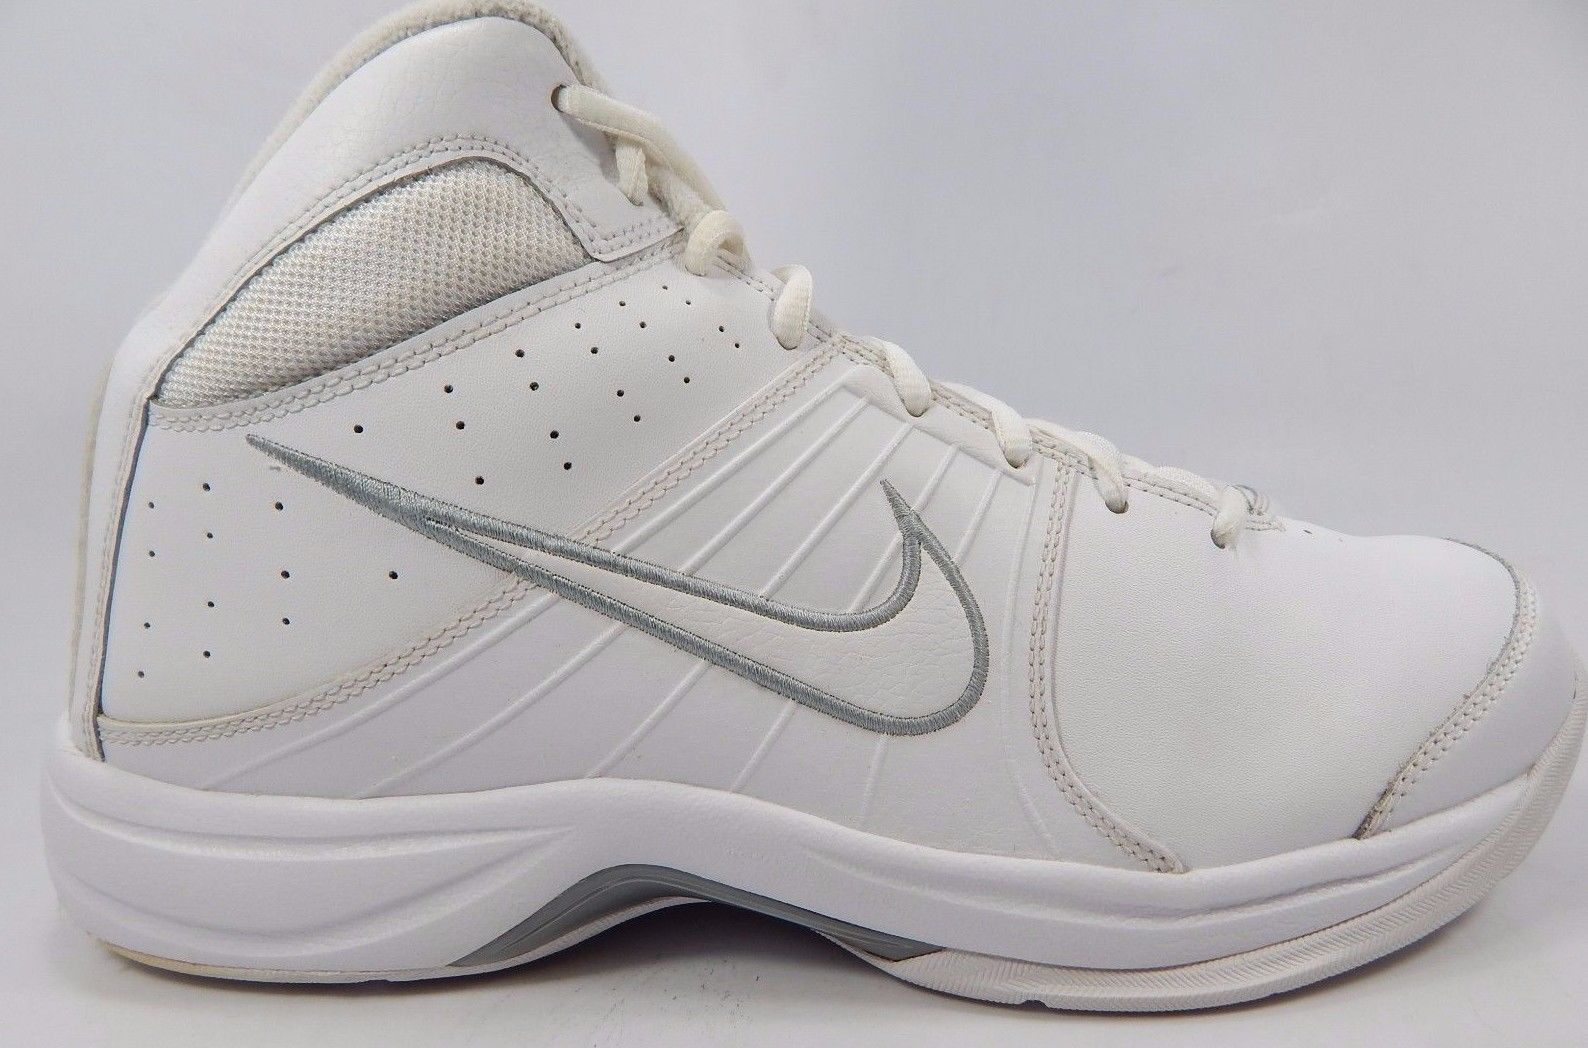 Primary image for Nike Overplay VI 6 Men's Basketball Shoes Sz US 11 M (D) EU 45 White 443456-103